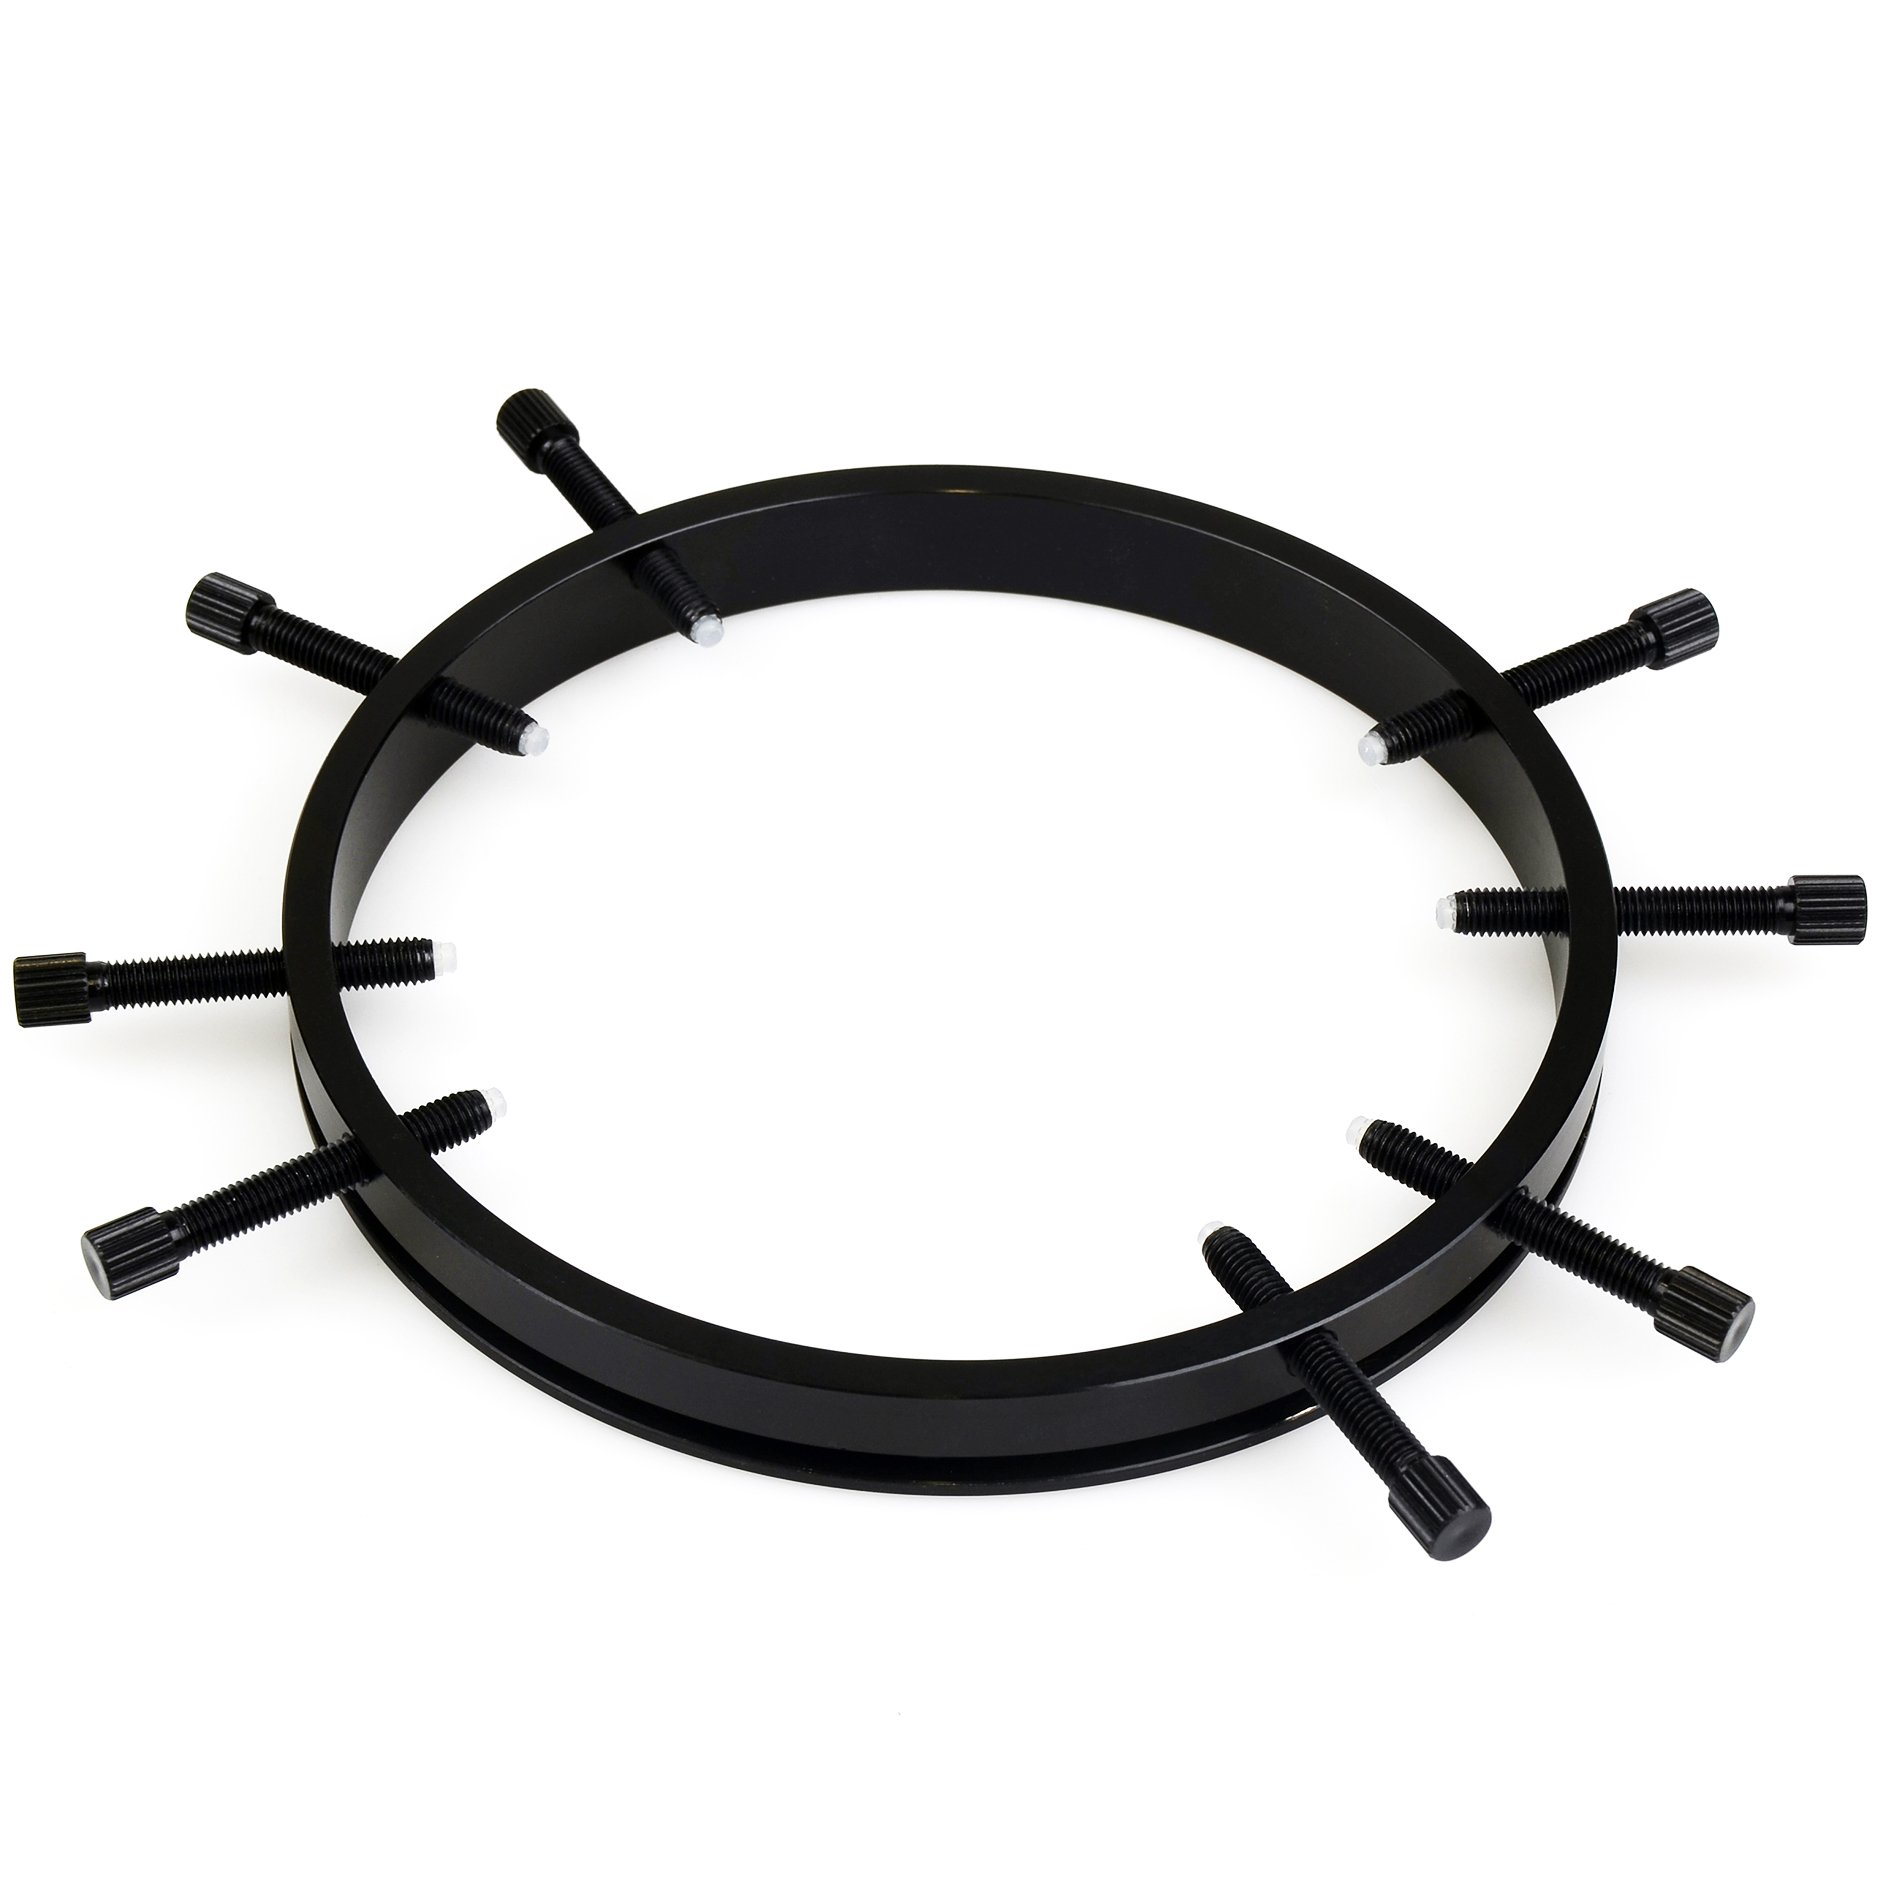 Cokin Universal Adaptor Ring 8 for XL (X) Series Filter Holder by Cokin